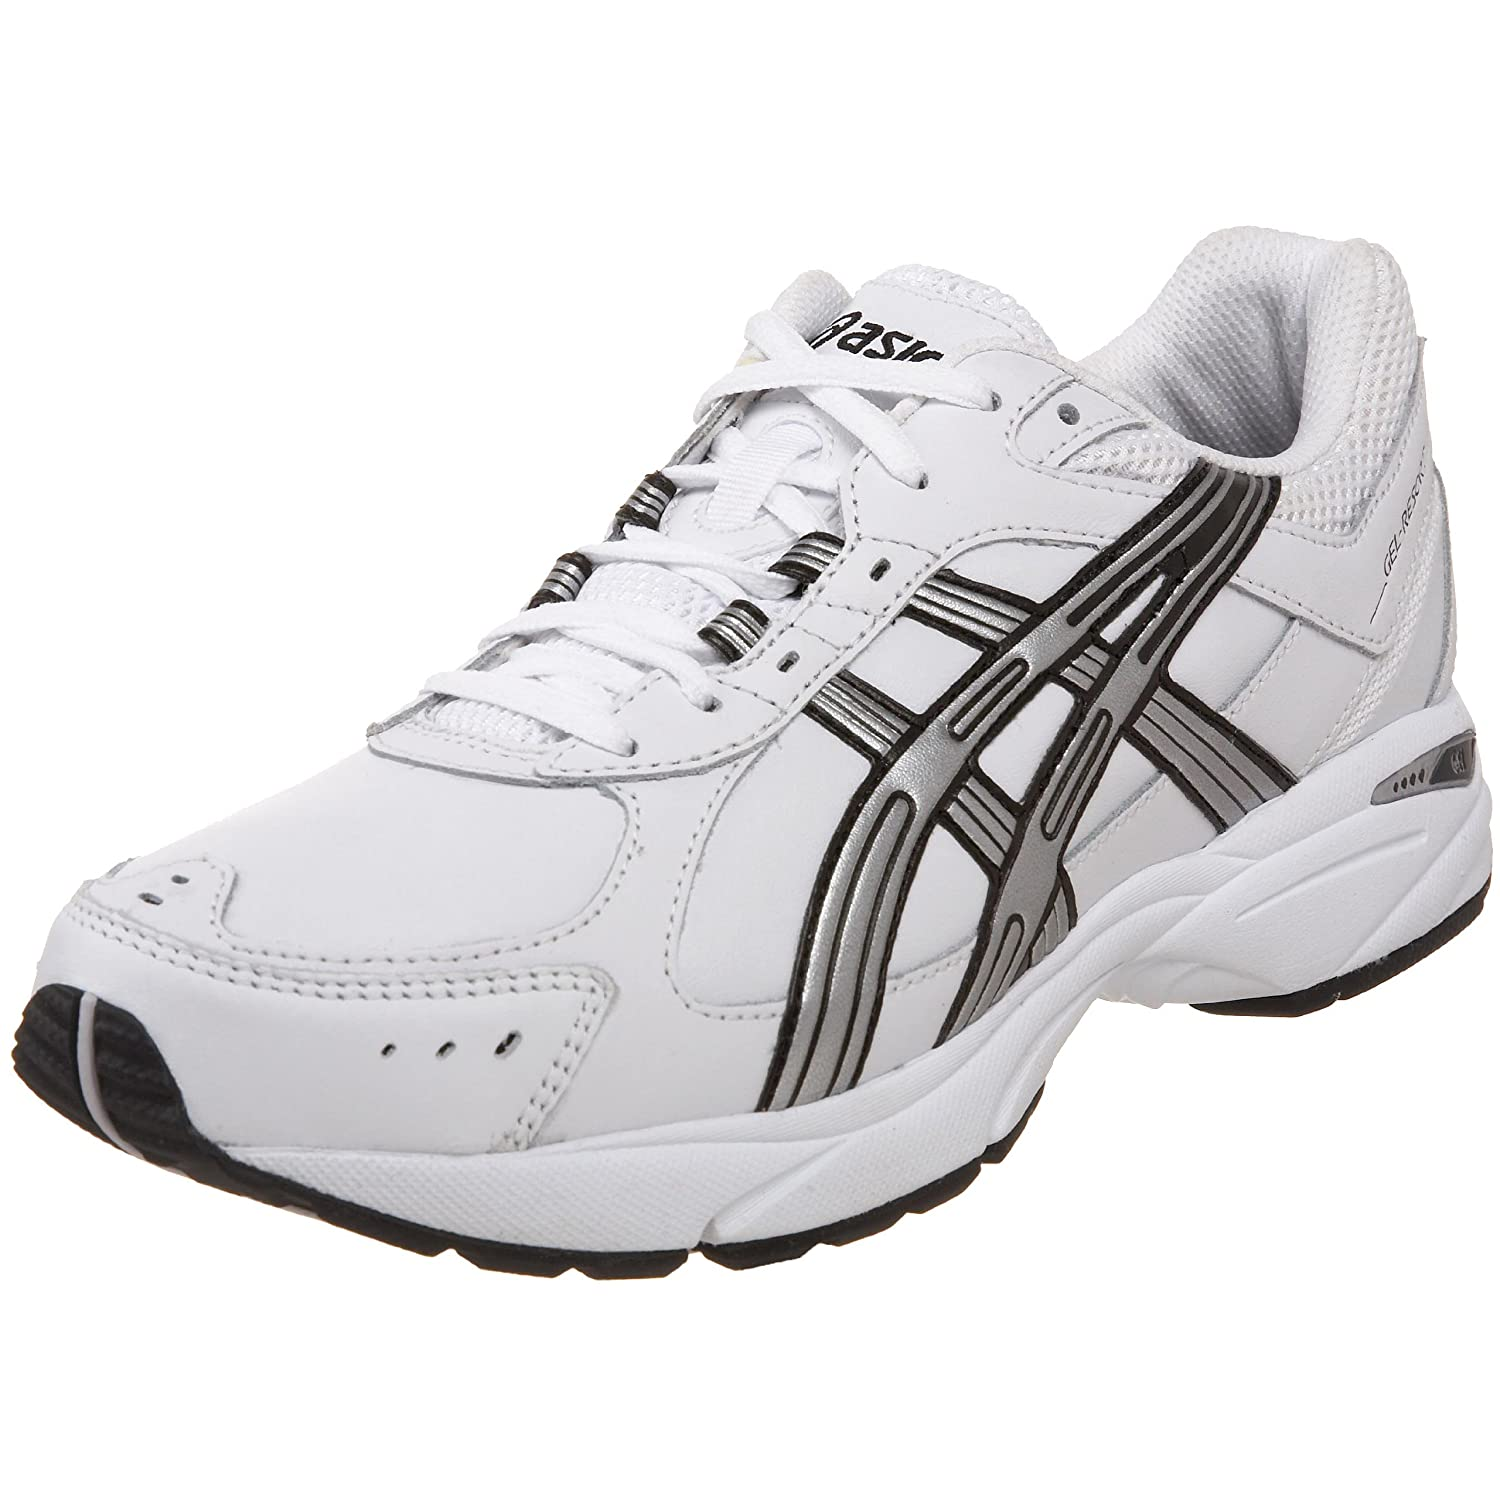 What Are The Best Walking Shoes For Arthritic Feet